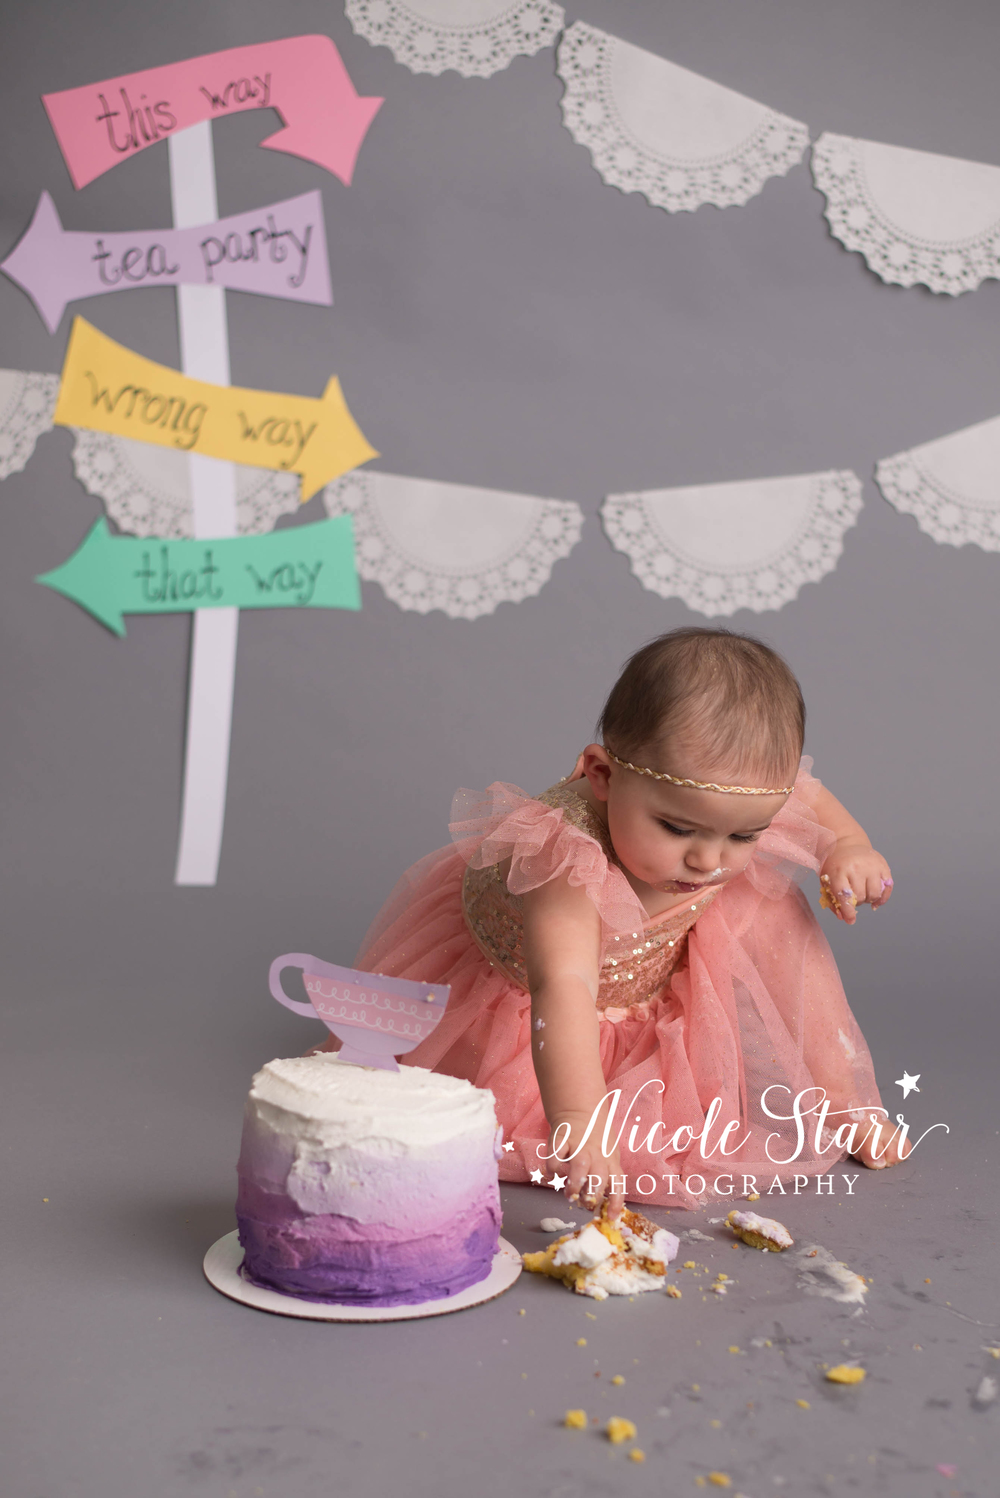 alice in wonderland cake smash with nicole starr photography, albany baby photographer